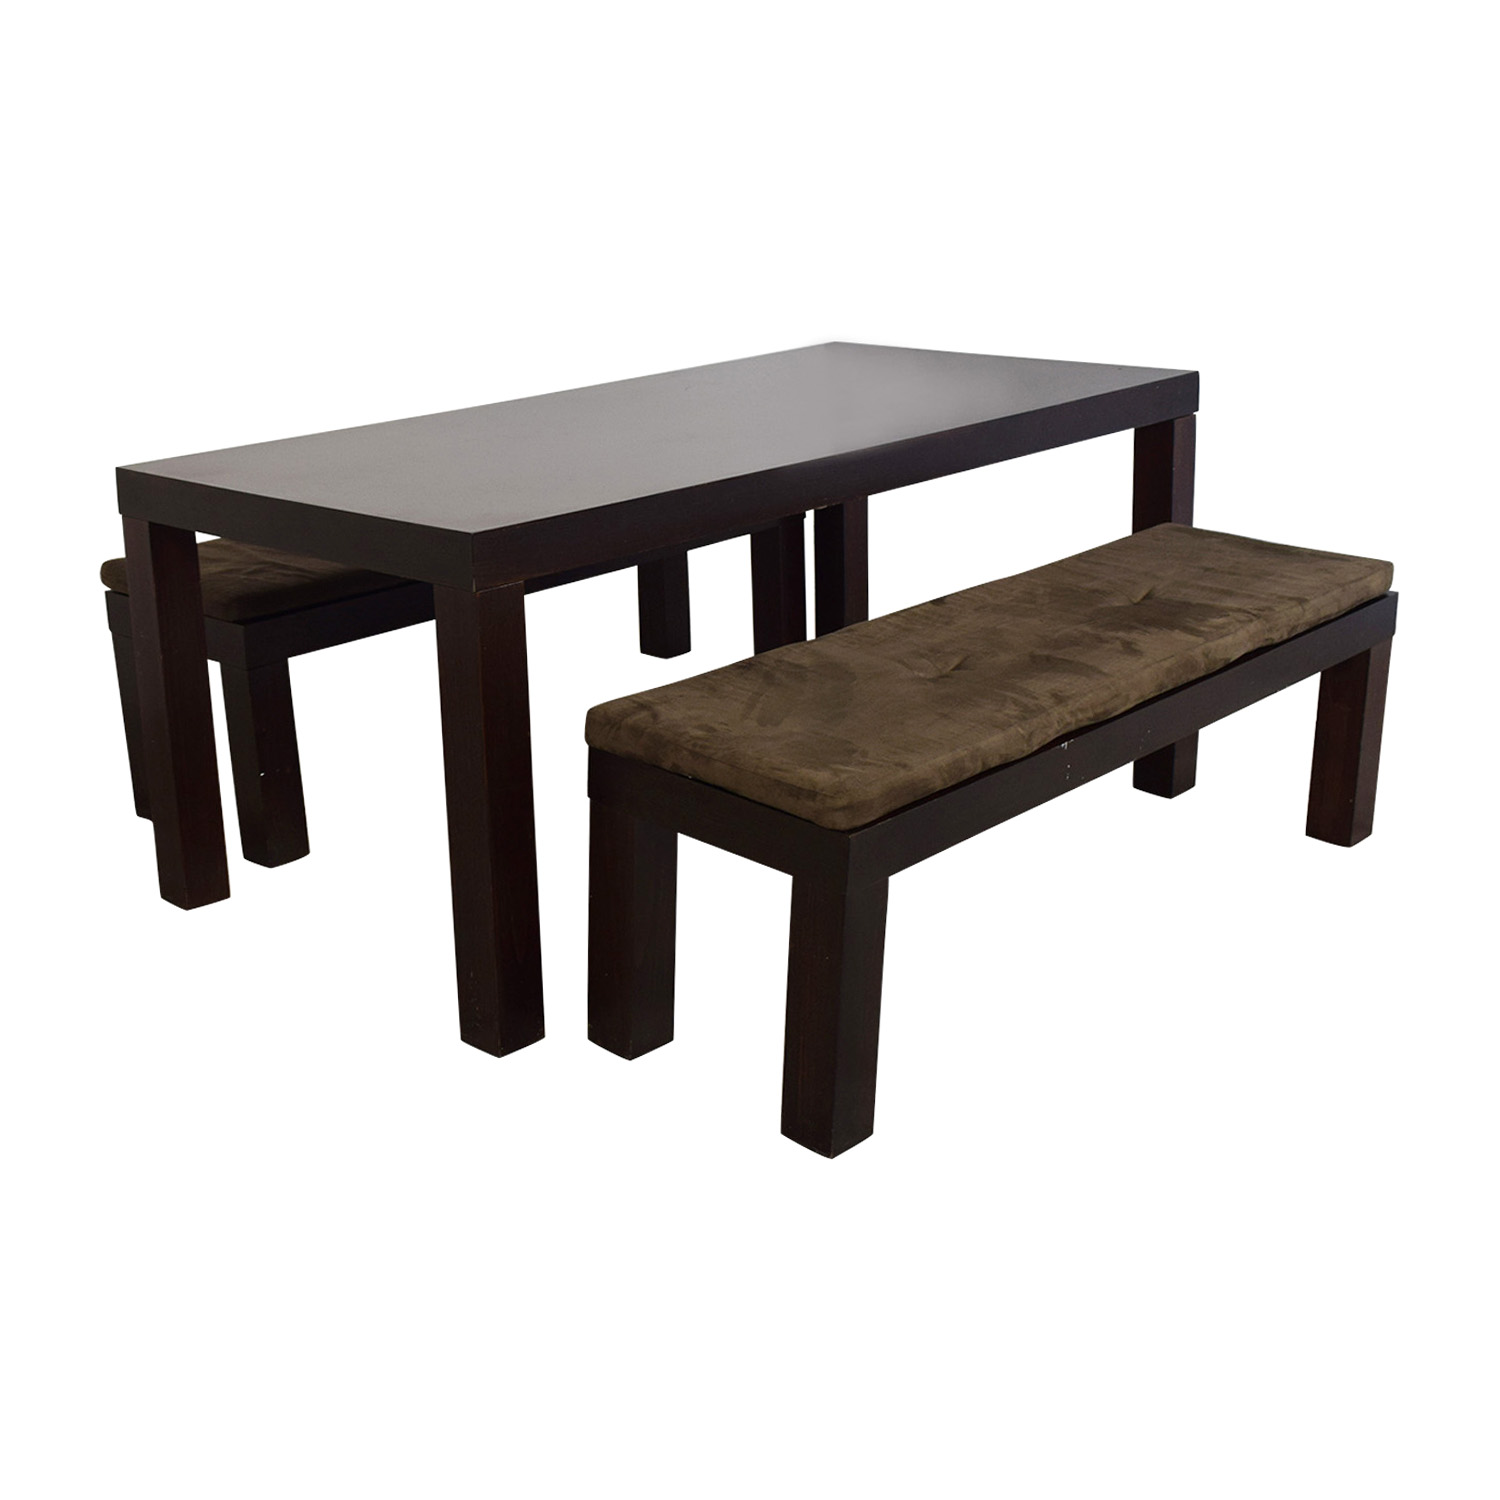 CB2 CB2 Indie Dining Table with Benches Dining Sets